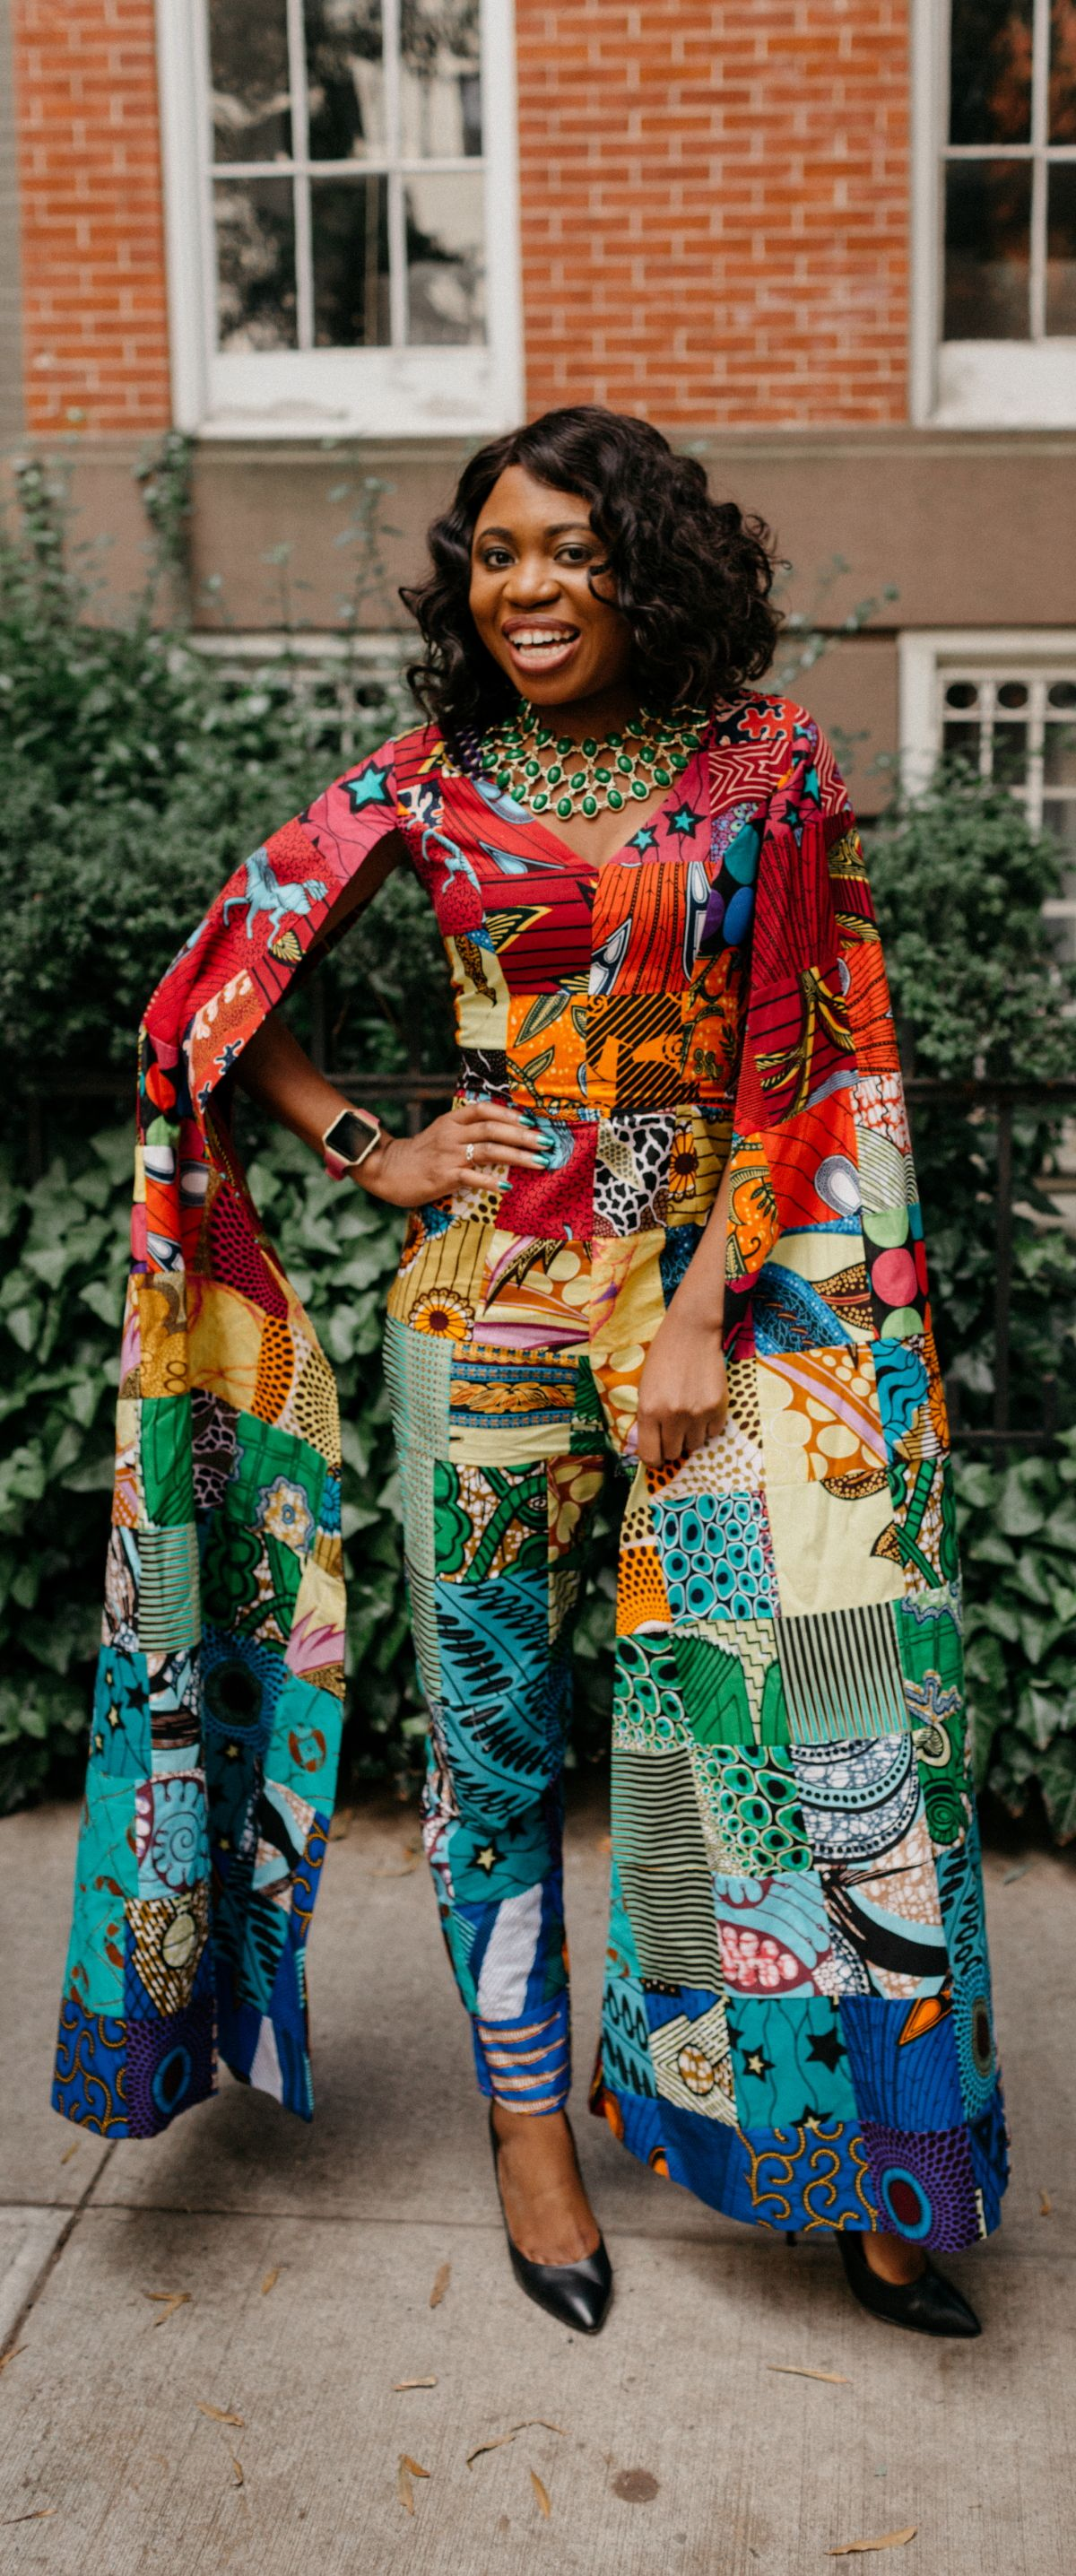 789f575b768 How I love the dramatic cape sleeves of this rainbow patchwork ankara  jumpsuit. I m sure she turned heads when she showed up to New York Fashion  Week ...